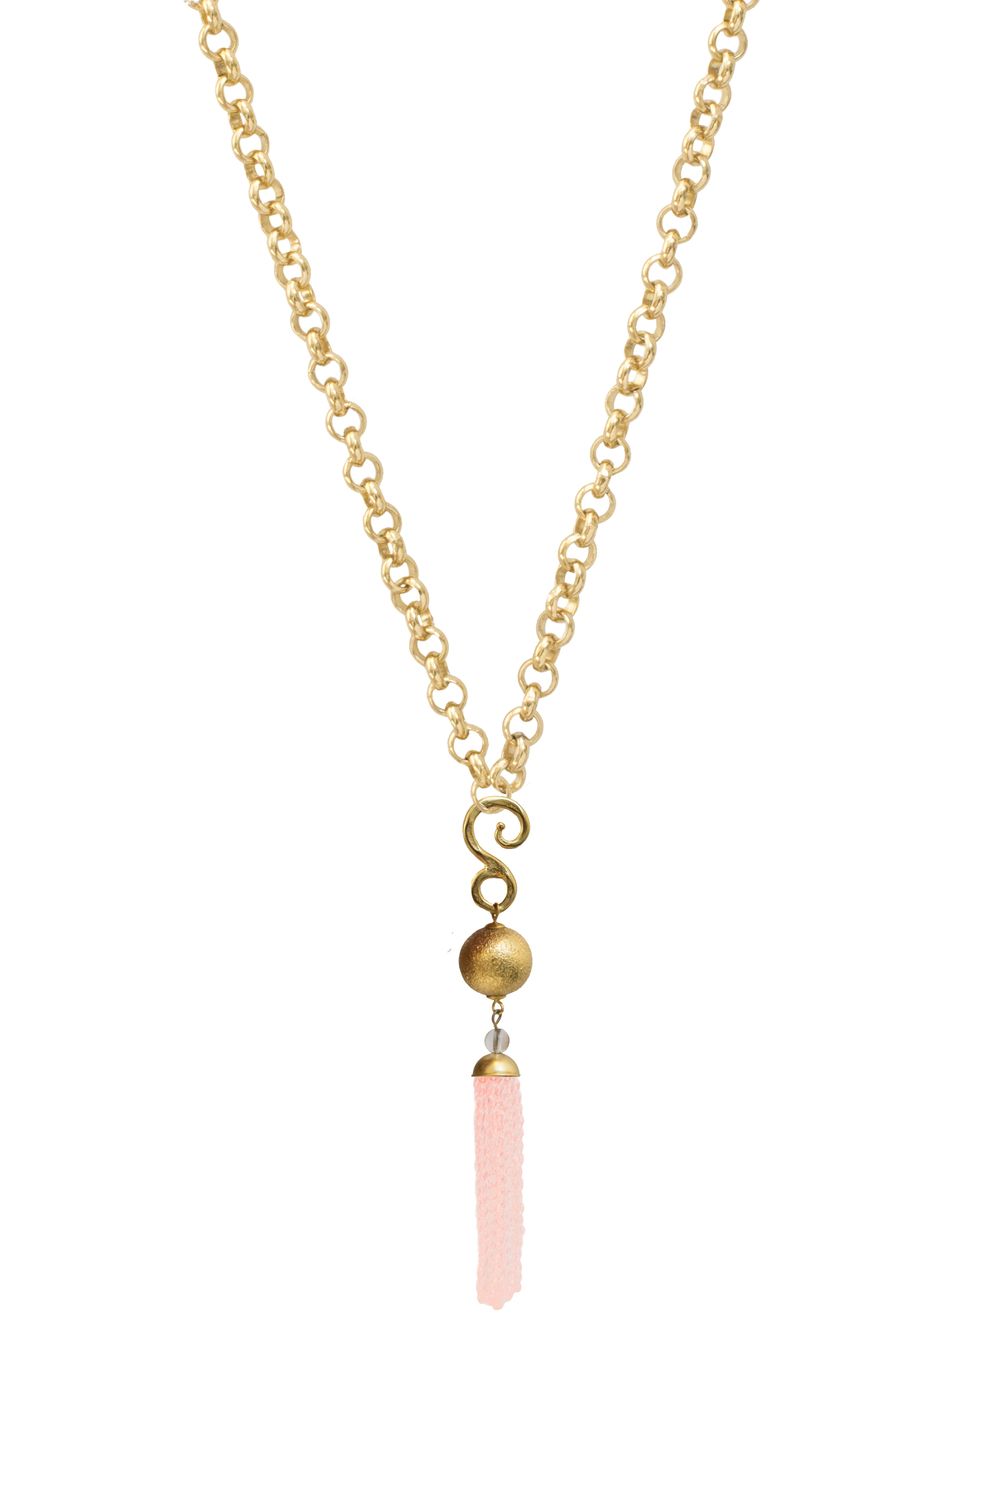 Sphere Tassel - Rose Quartz.jpg